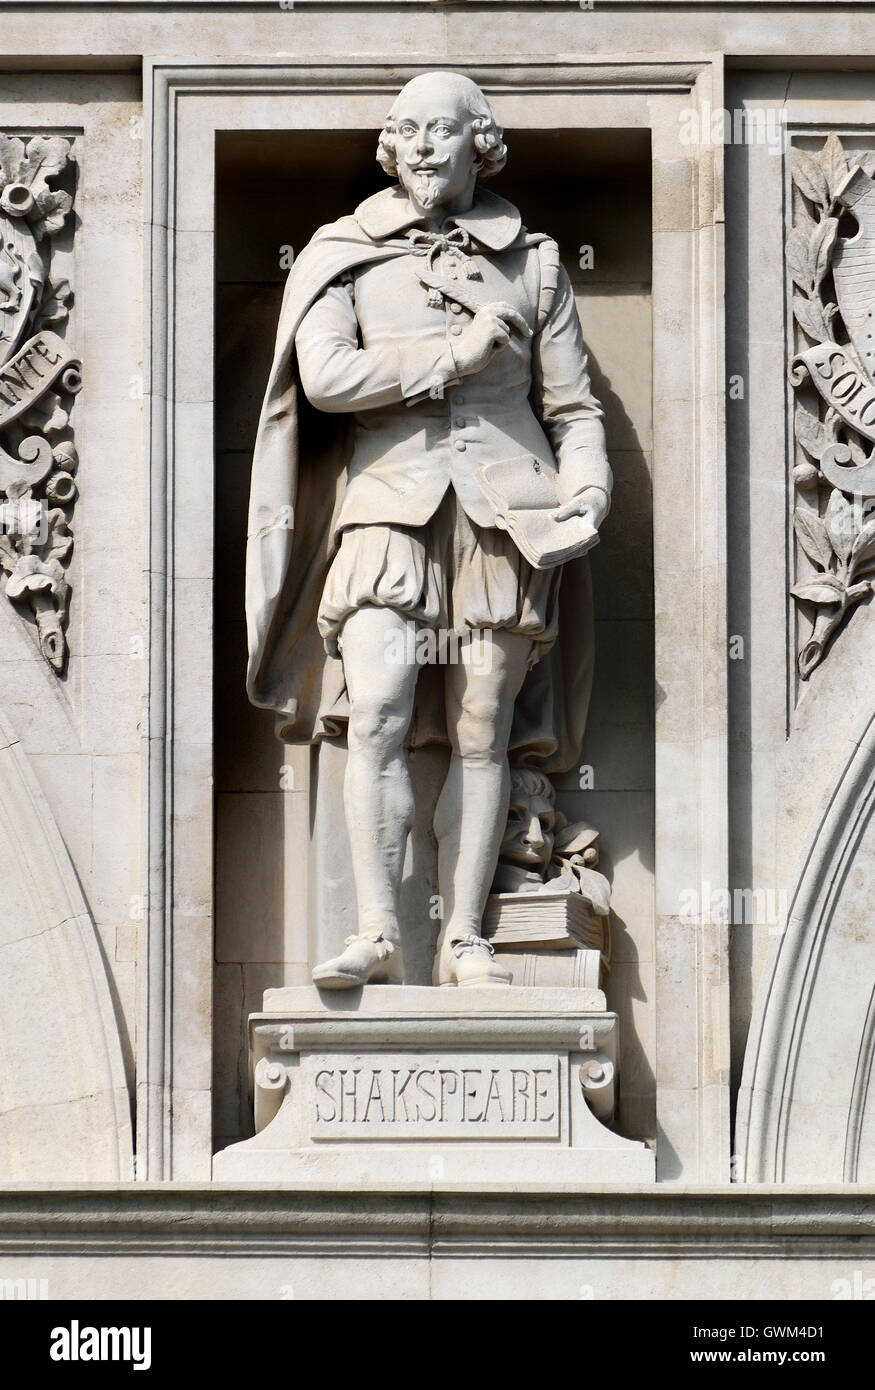 London, England, UK. City of London School, Victoria Embankment. Statue on facade: William Shakespeare - Stock Image